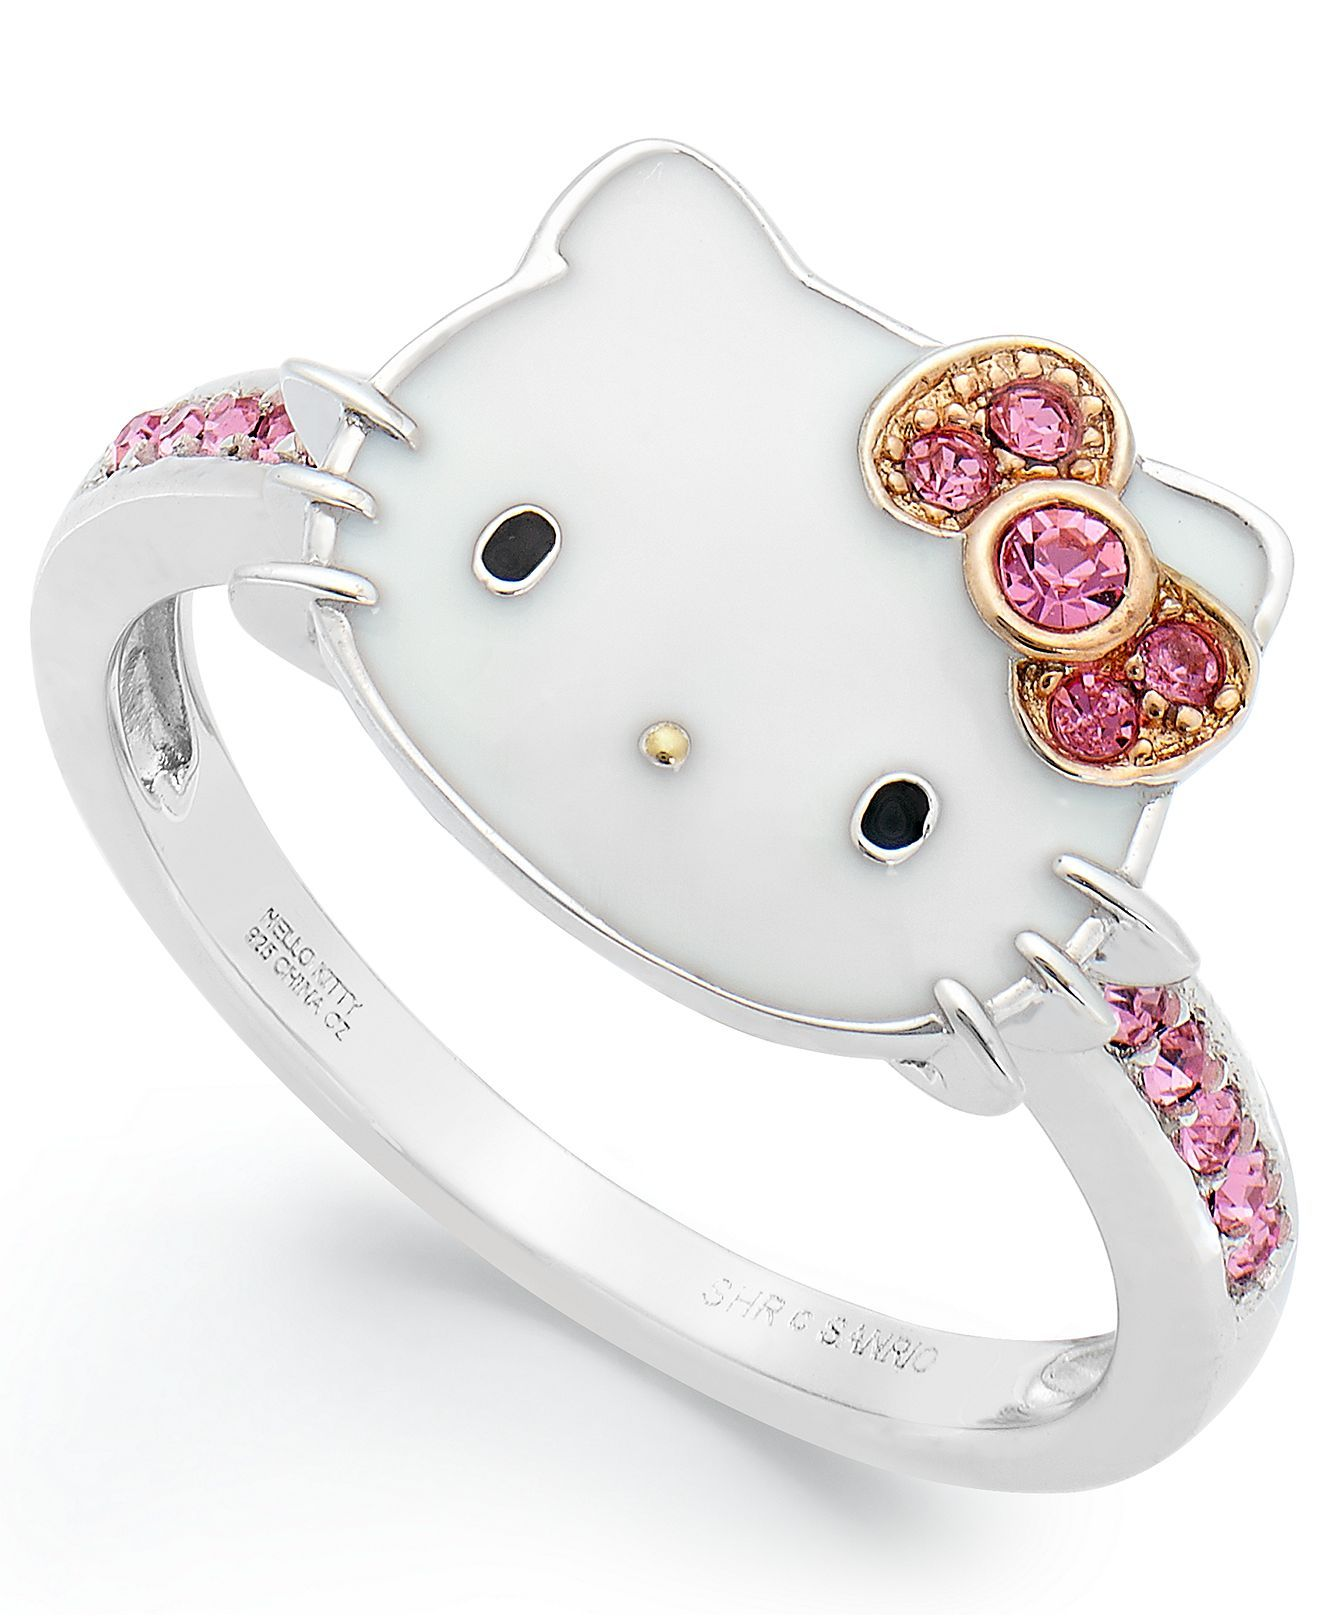 hk hello kitty sterling silver pink crystal and enamel face ring macys - Hello Kitty Wedding Ring